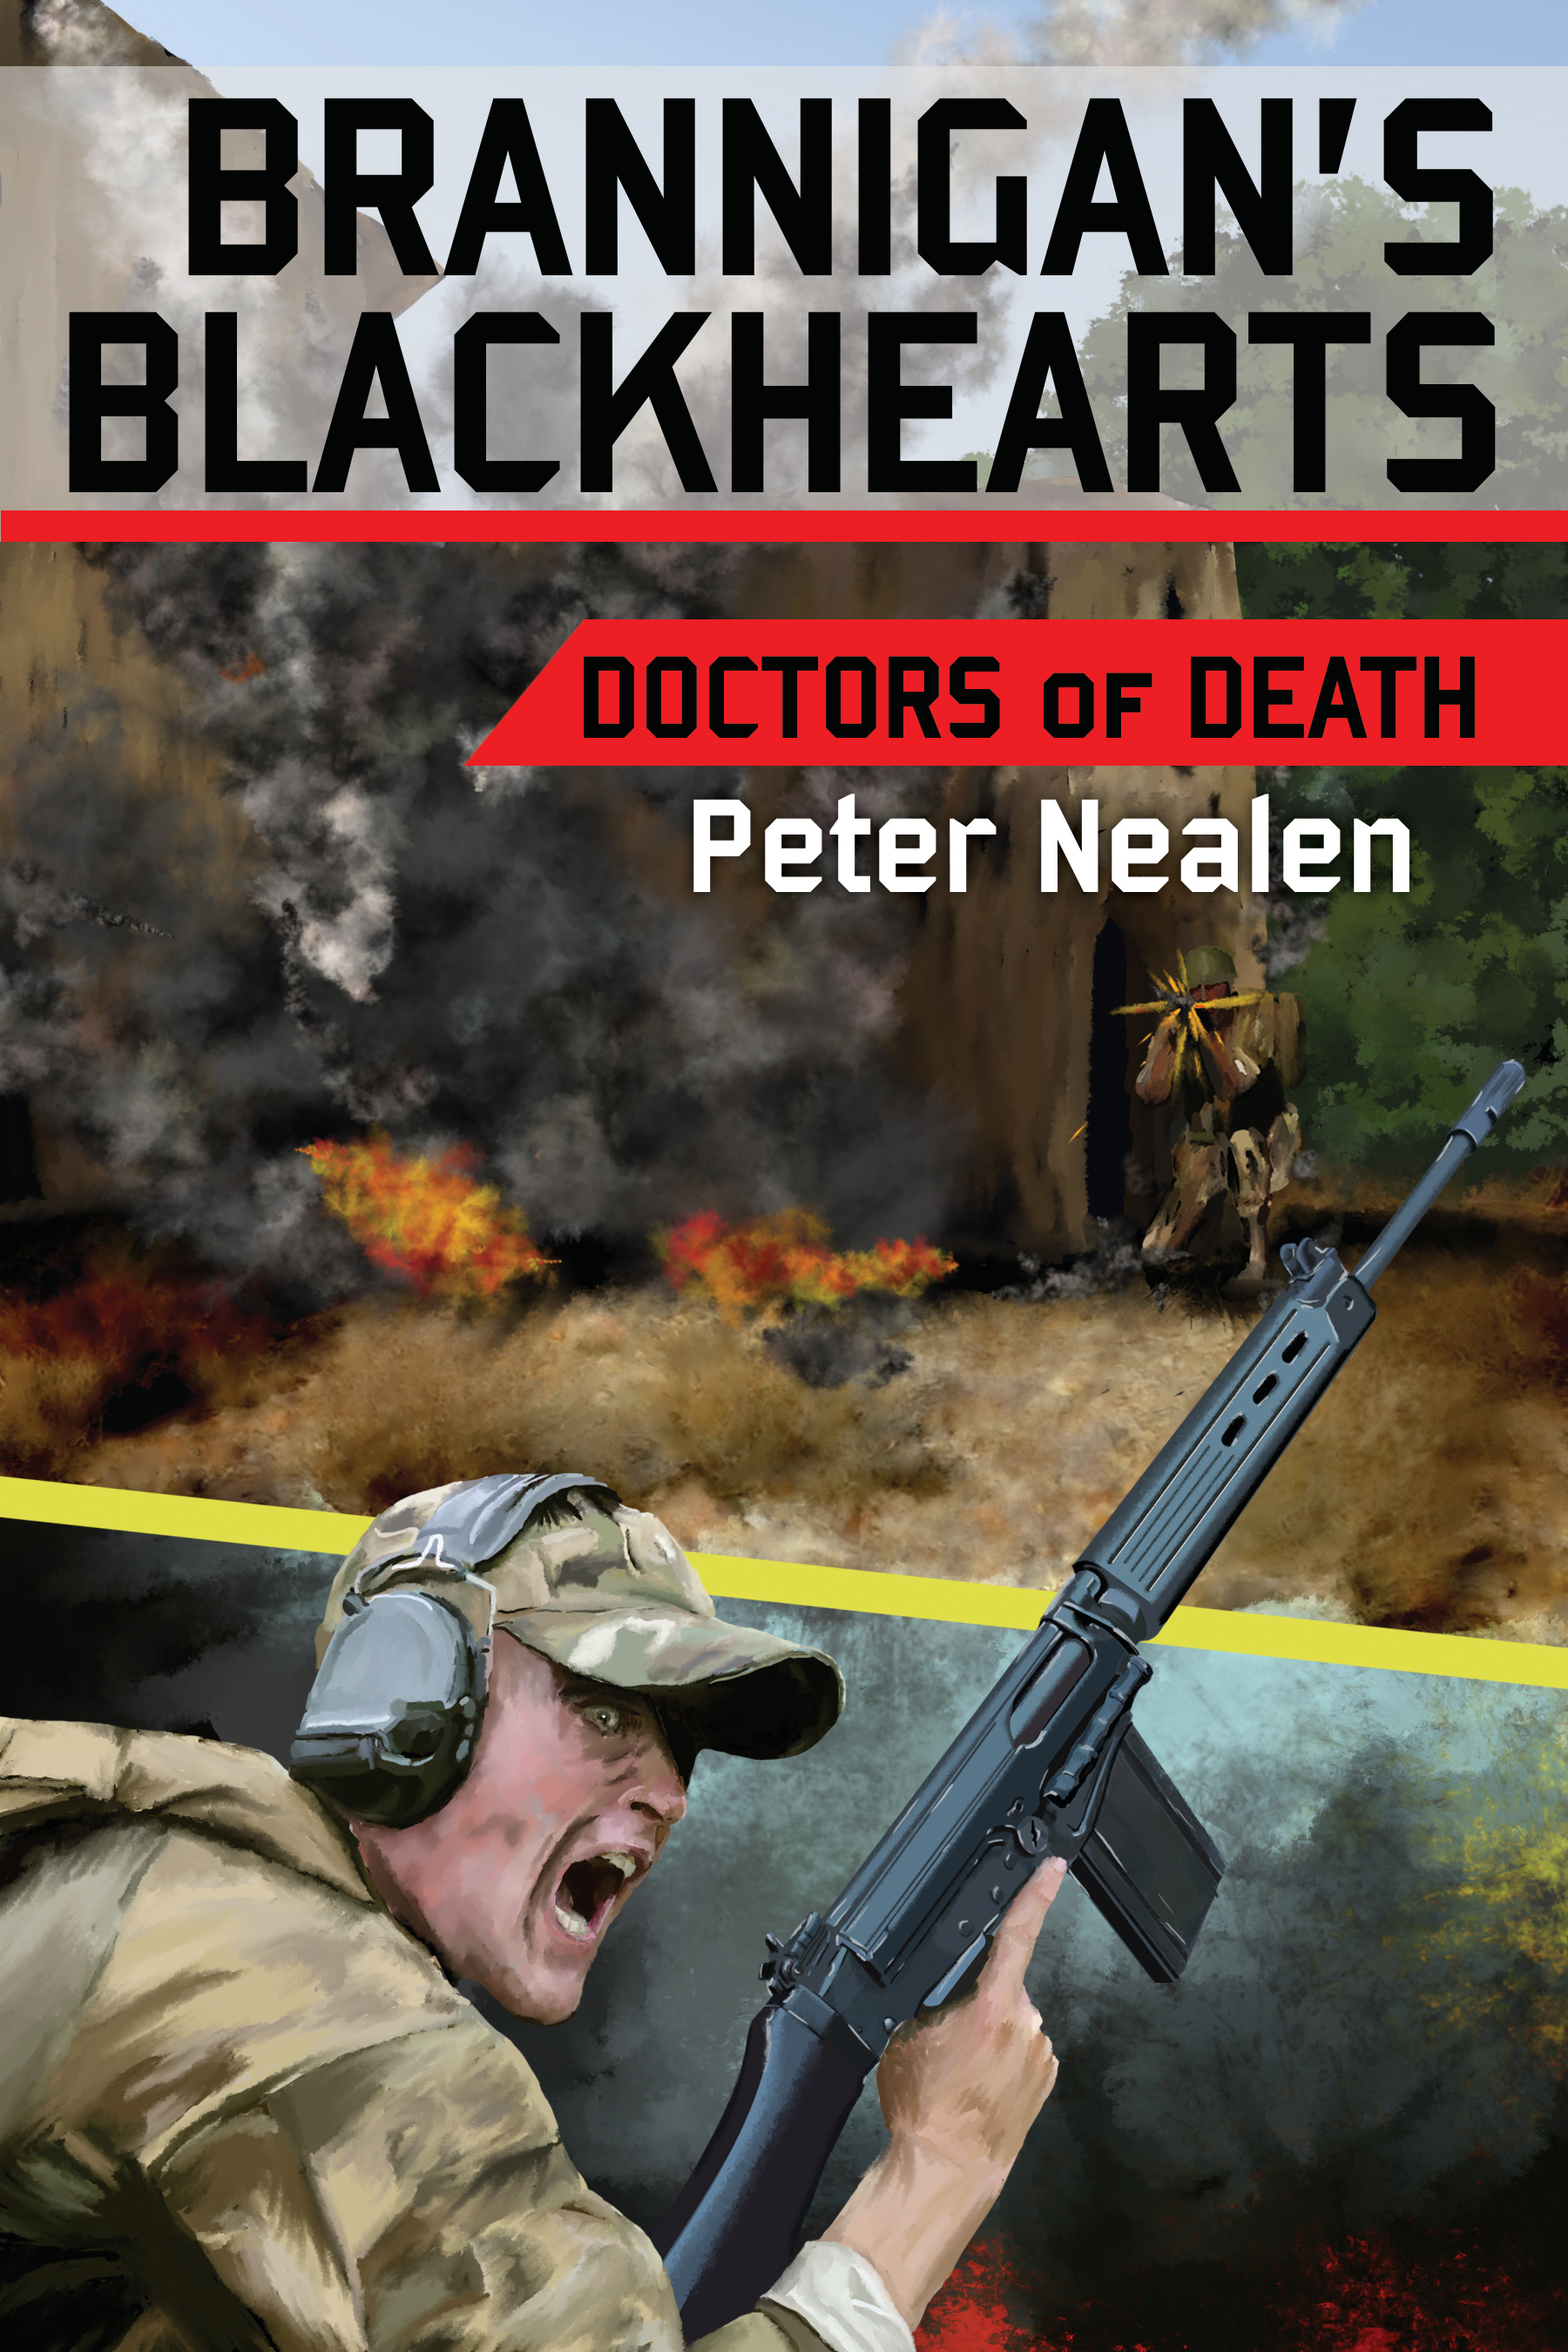 Doctors of Death by Peter Nealen